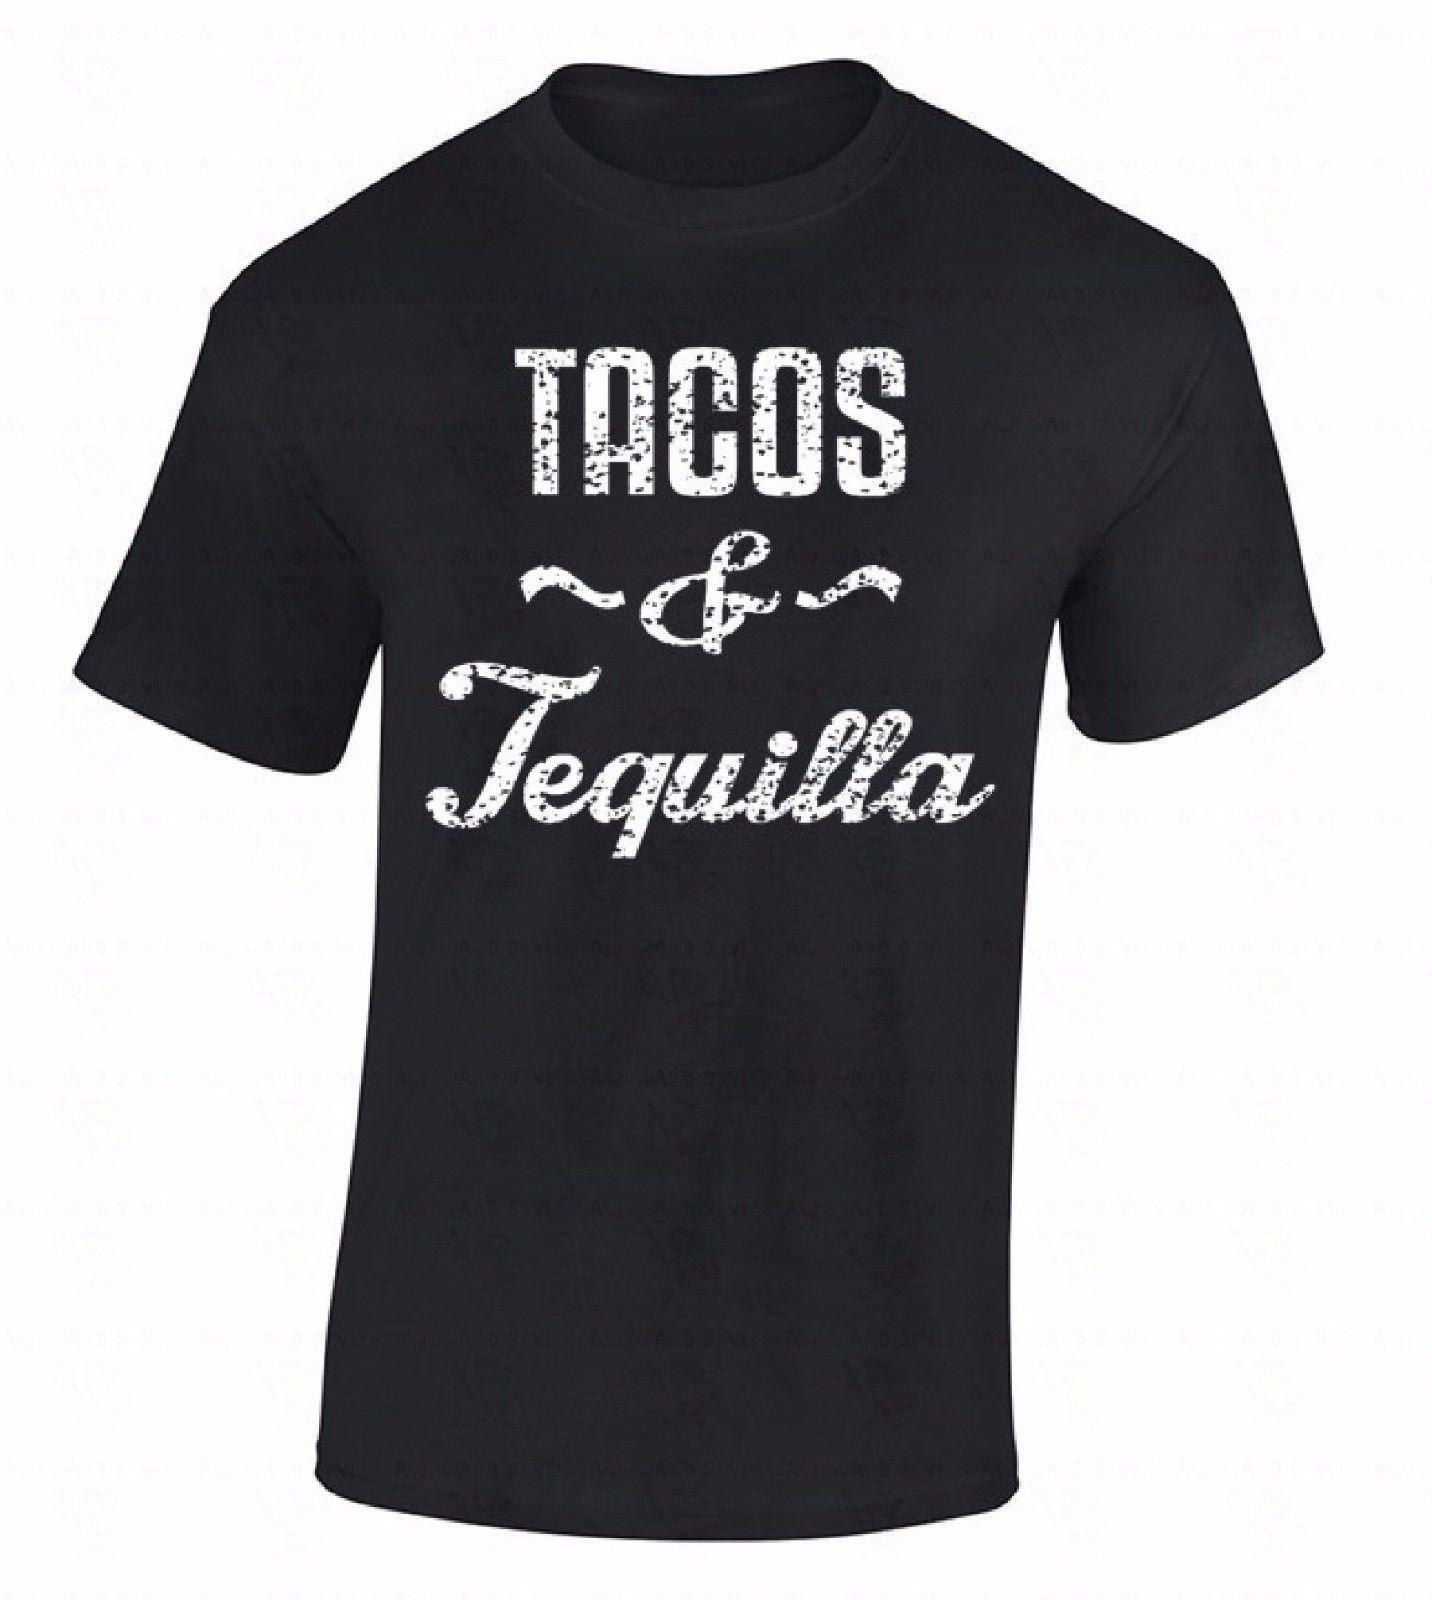 d1b2bc4cf8becb Fashion Men Tshirt Tacos   Tequila T Shirt White Fashion Mexico Spanish  Shirt Drinking Eating Tee O Neck T Shirt Clever T Shirts Best Tee Shirts  From ...